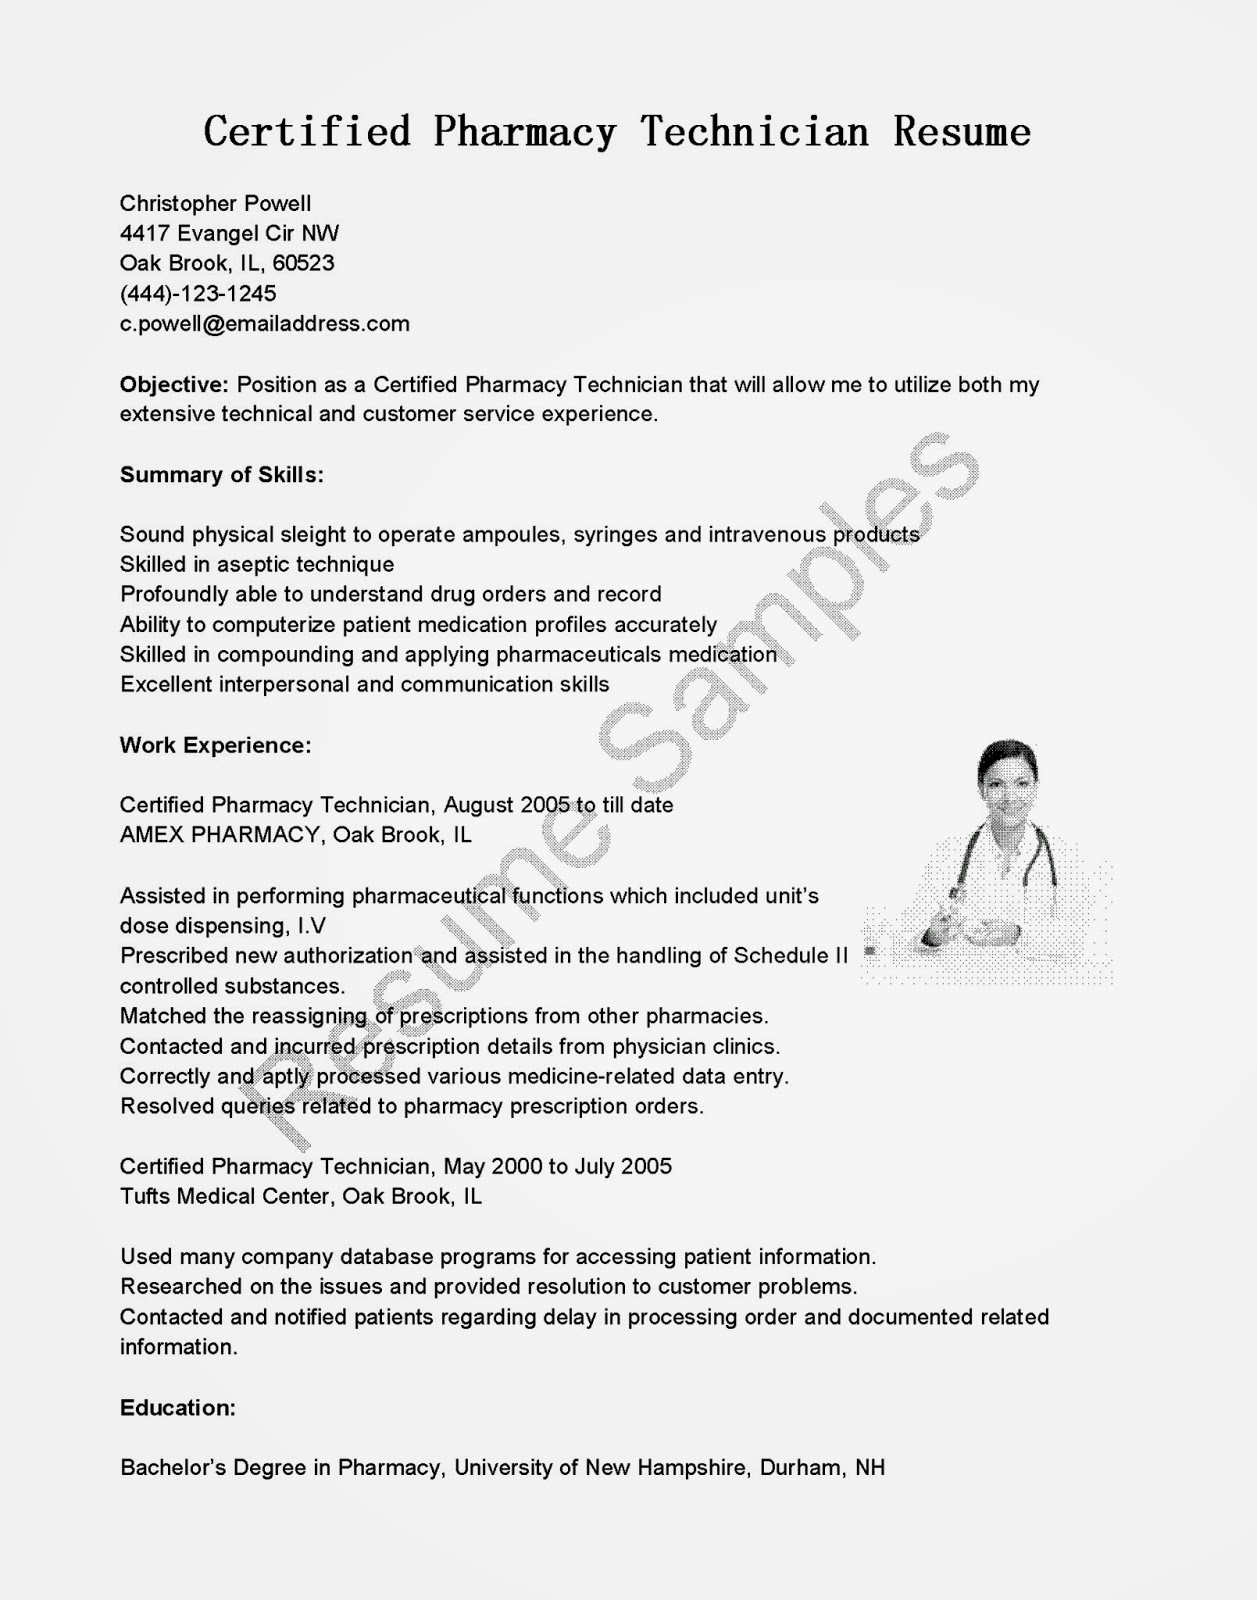 Resume Samples Certified Pharmacy Technician Resume Sample